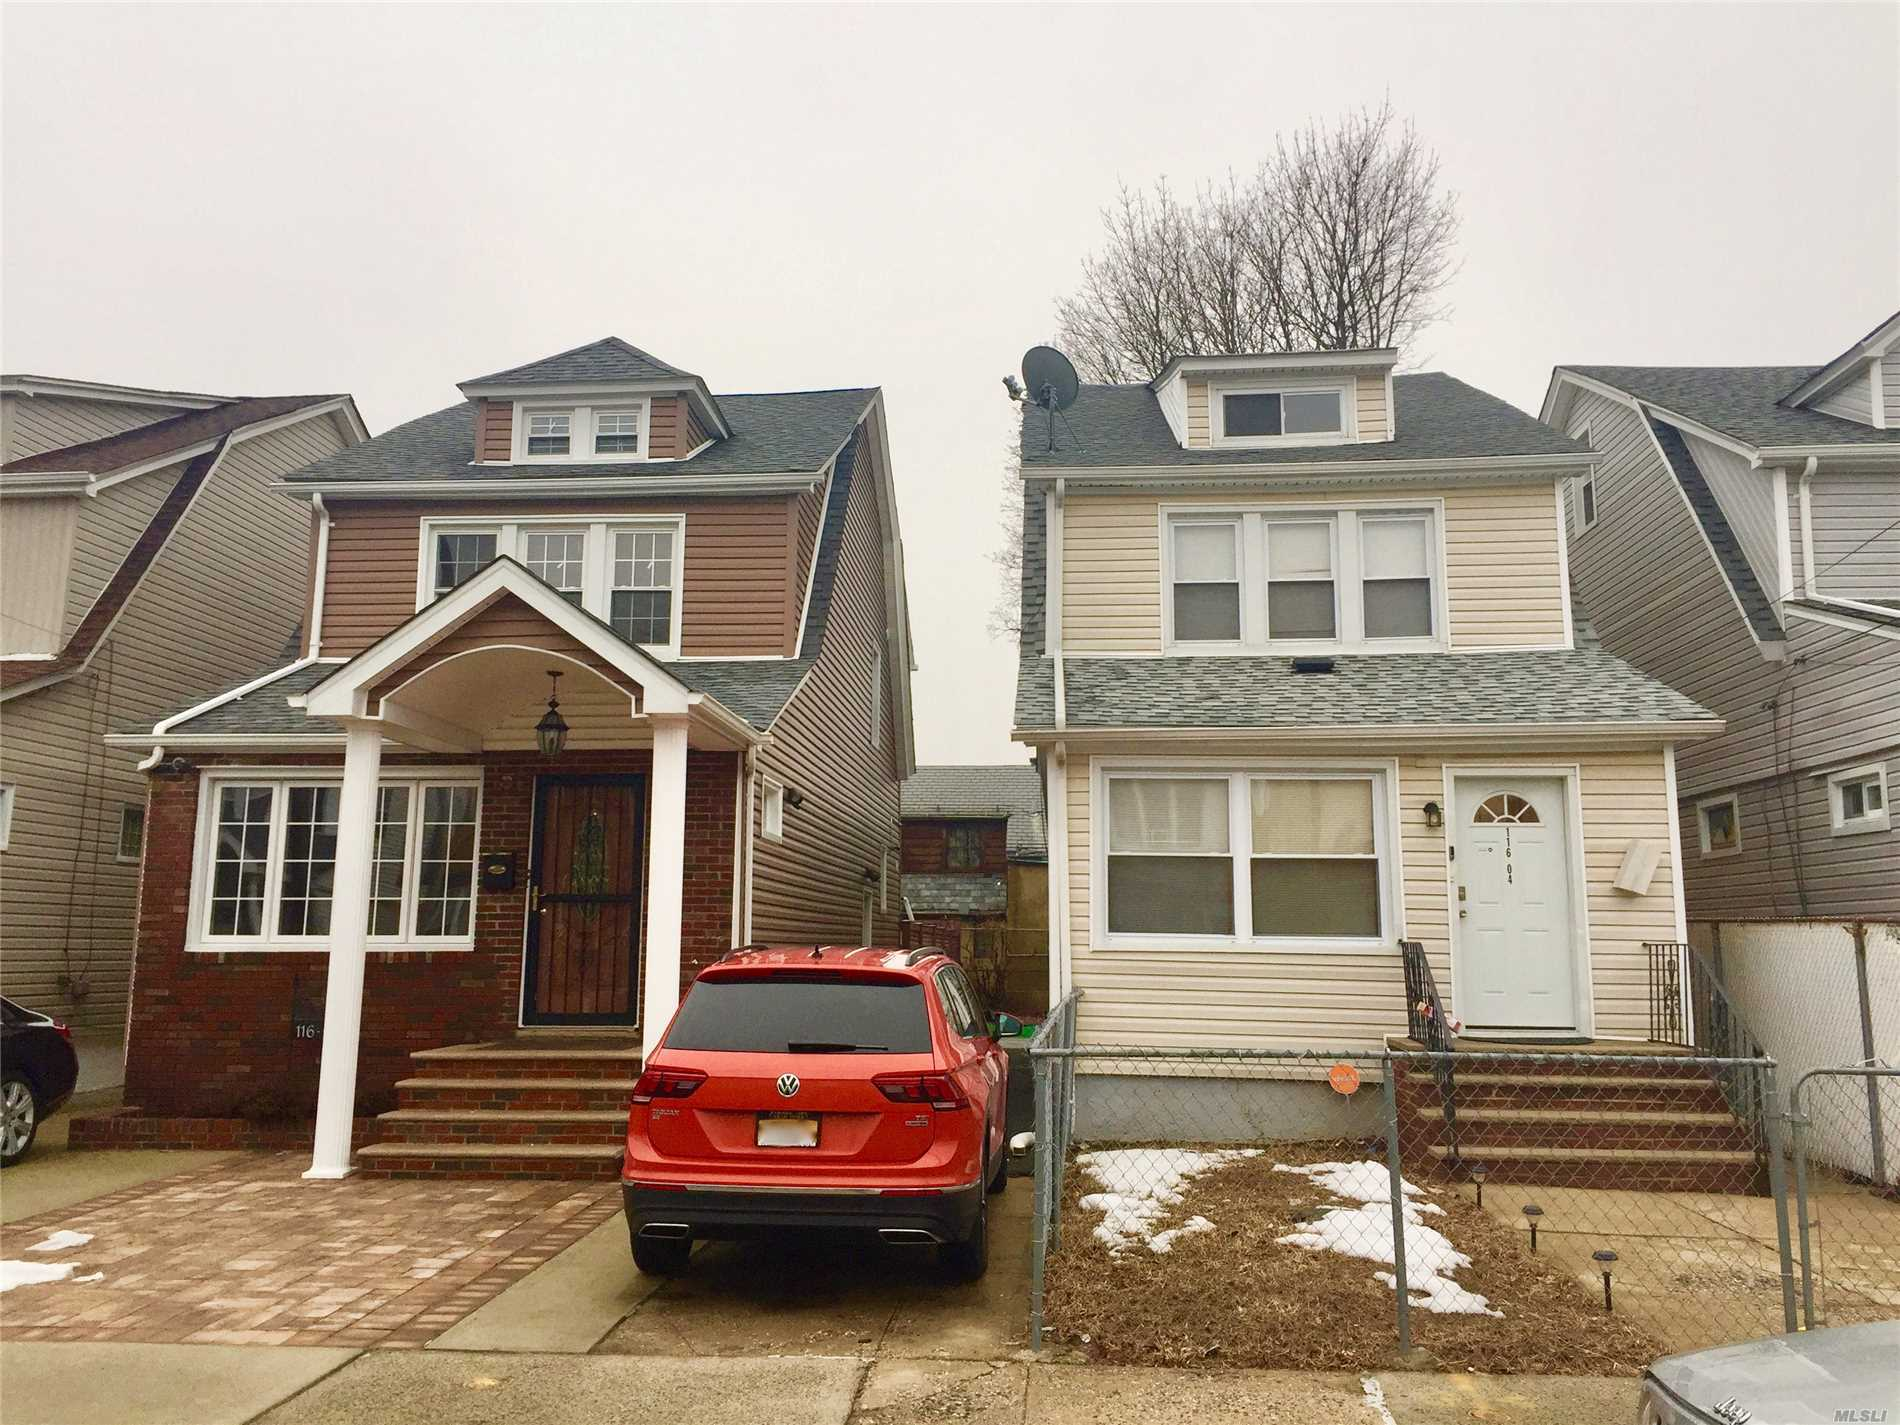 Beautiful One family house Fully Renovated, 5 Br, 3 Baths, kitchen With Granite Counters, Large finished Basement With Gas Heat, New Gas Furnace And Hot Water Heater,